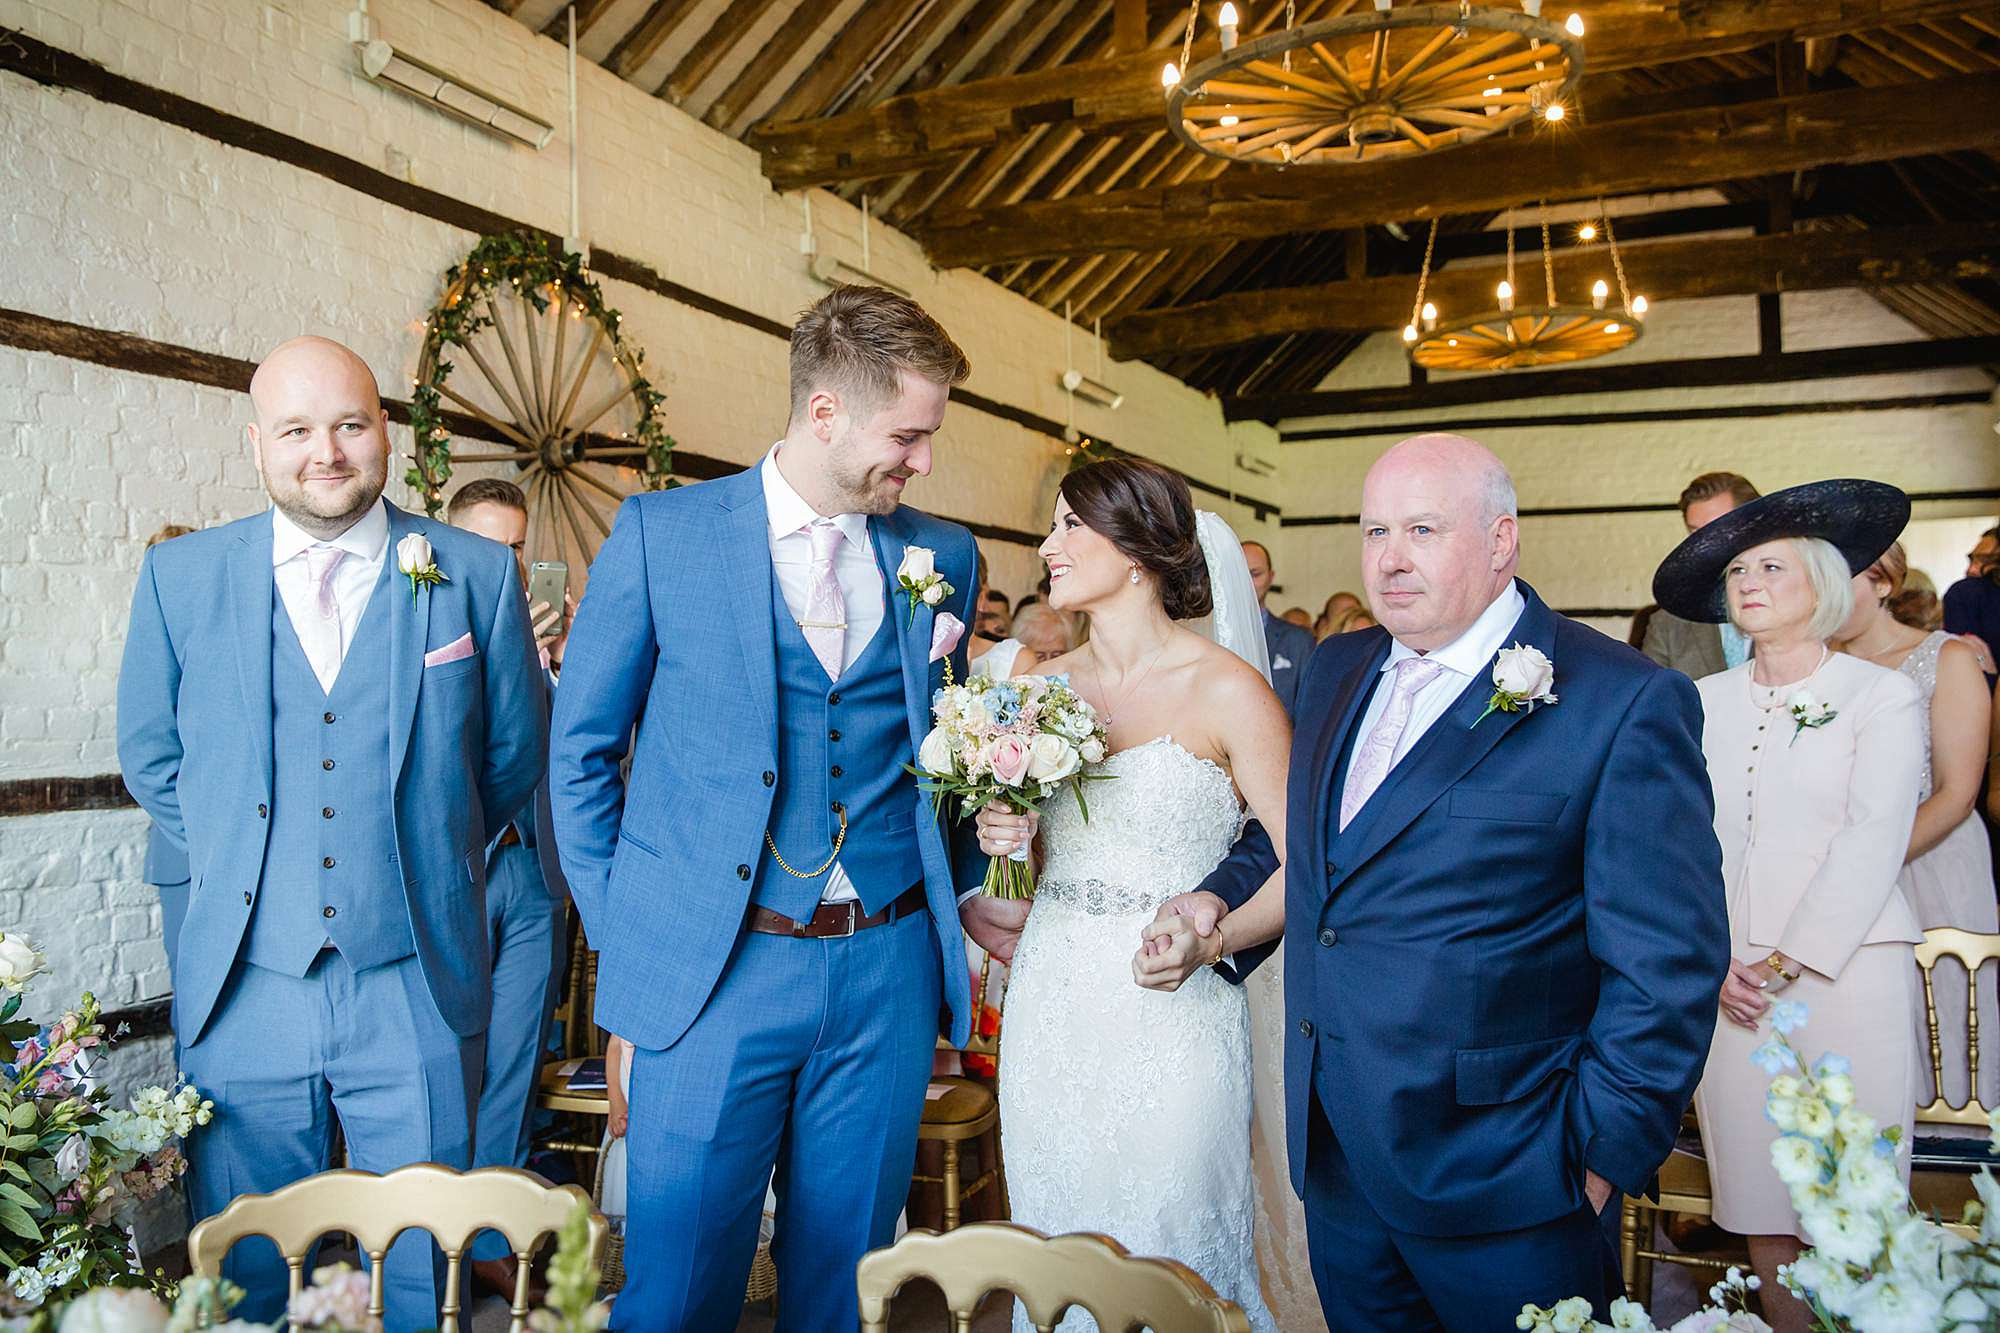 Lillibrooke Manor wedding bride greets groom at end of alter